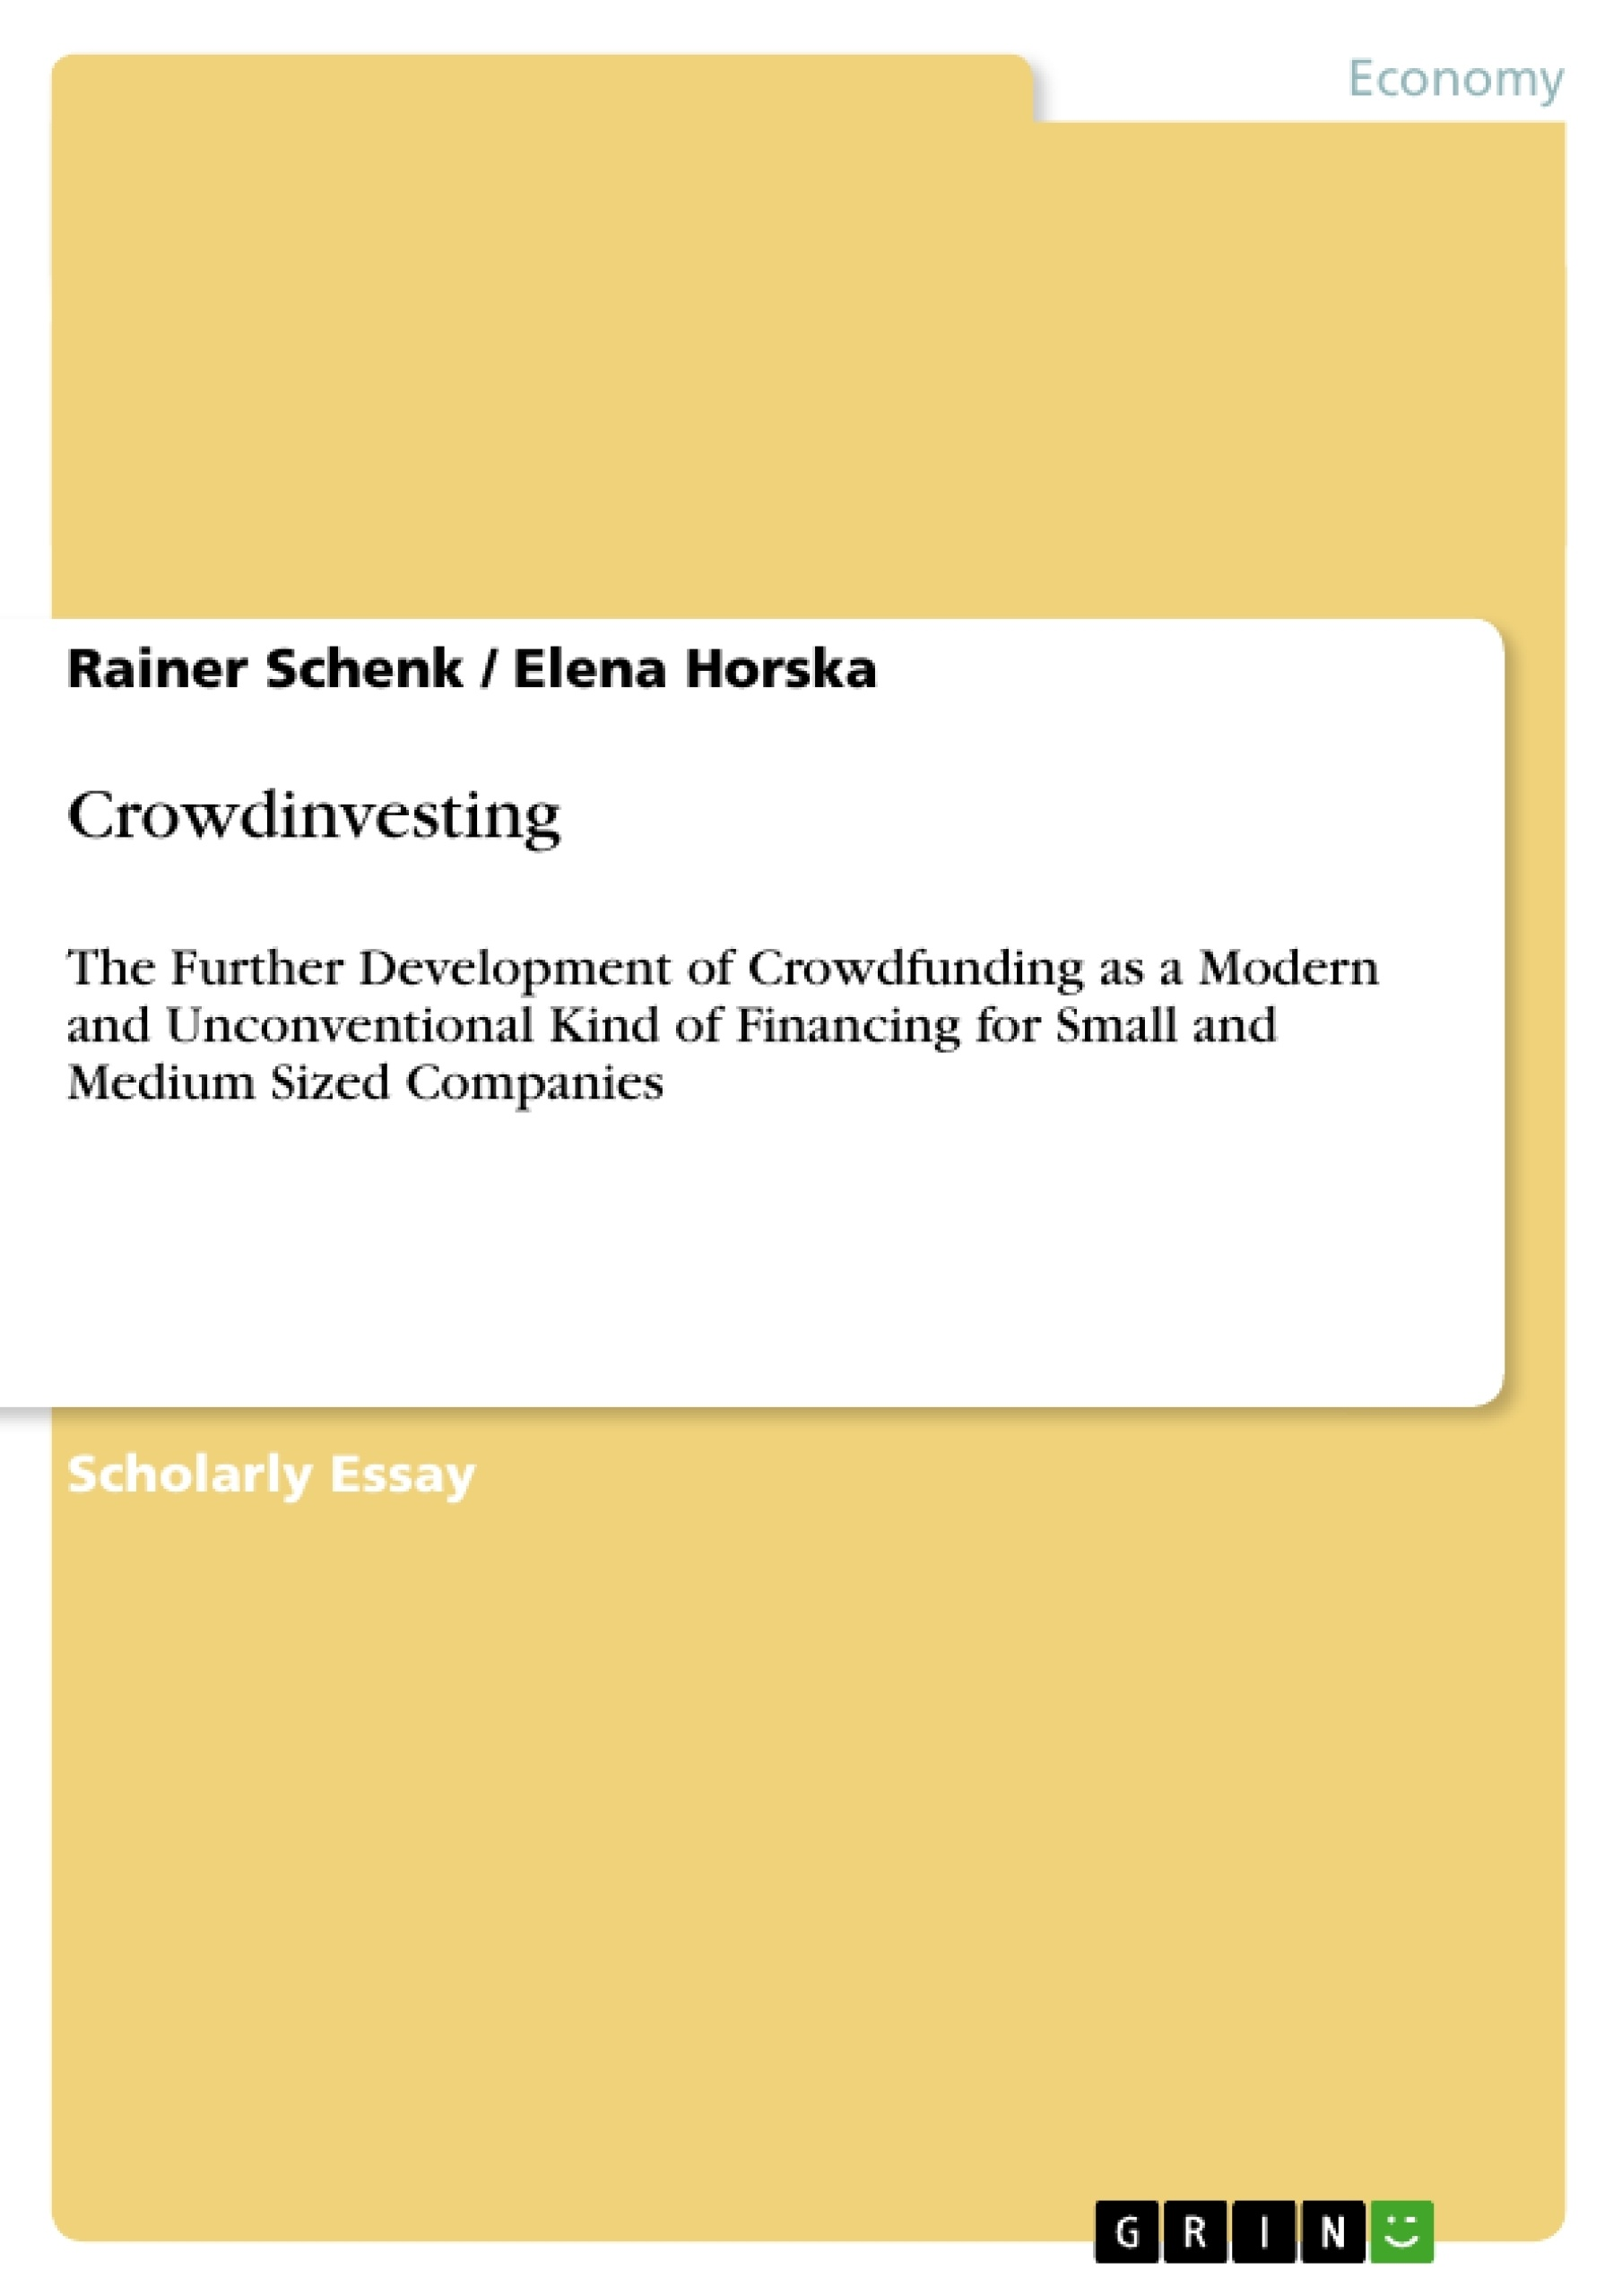 medium-sized and small enterprises financing thesis